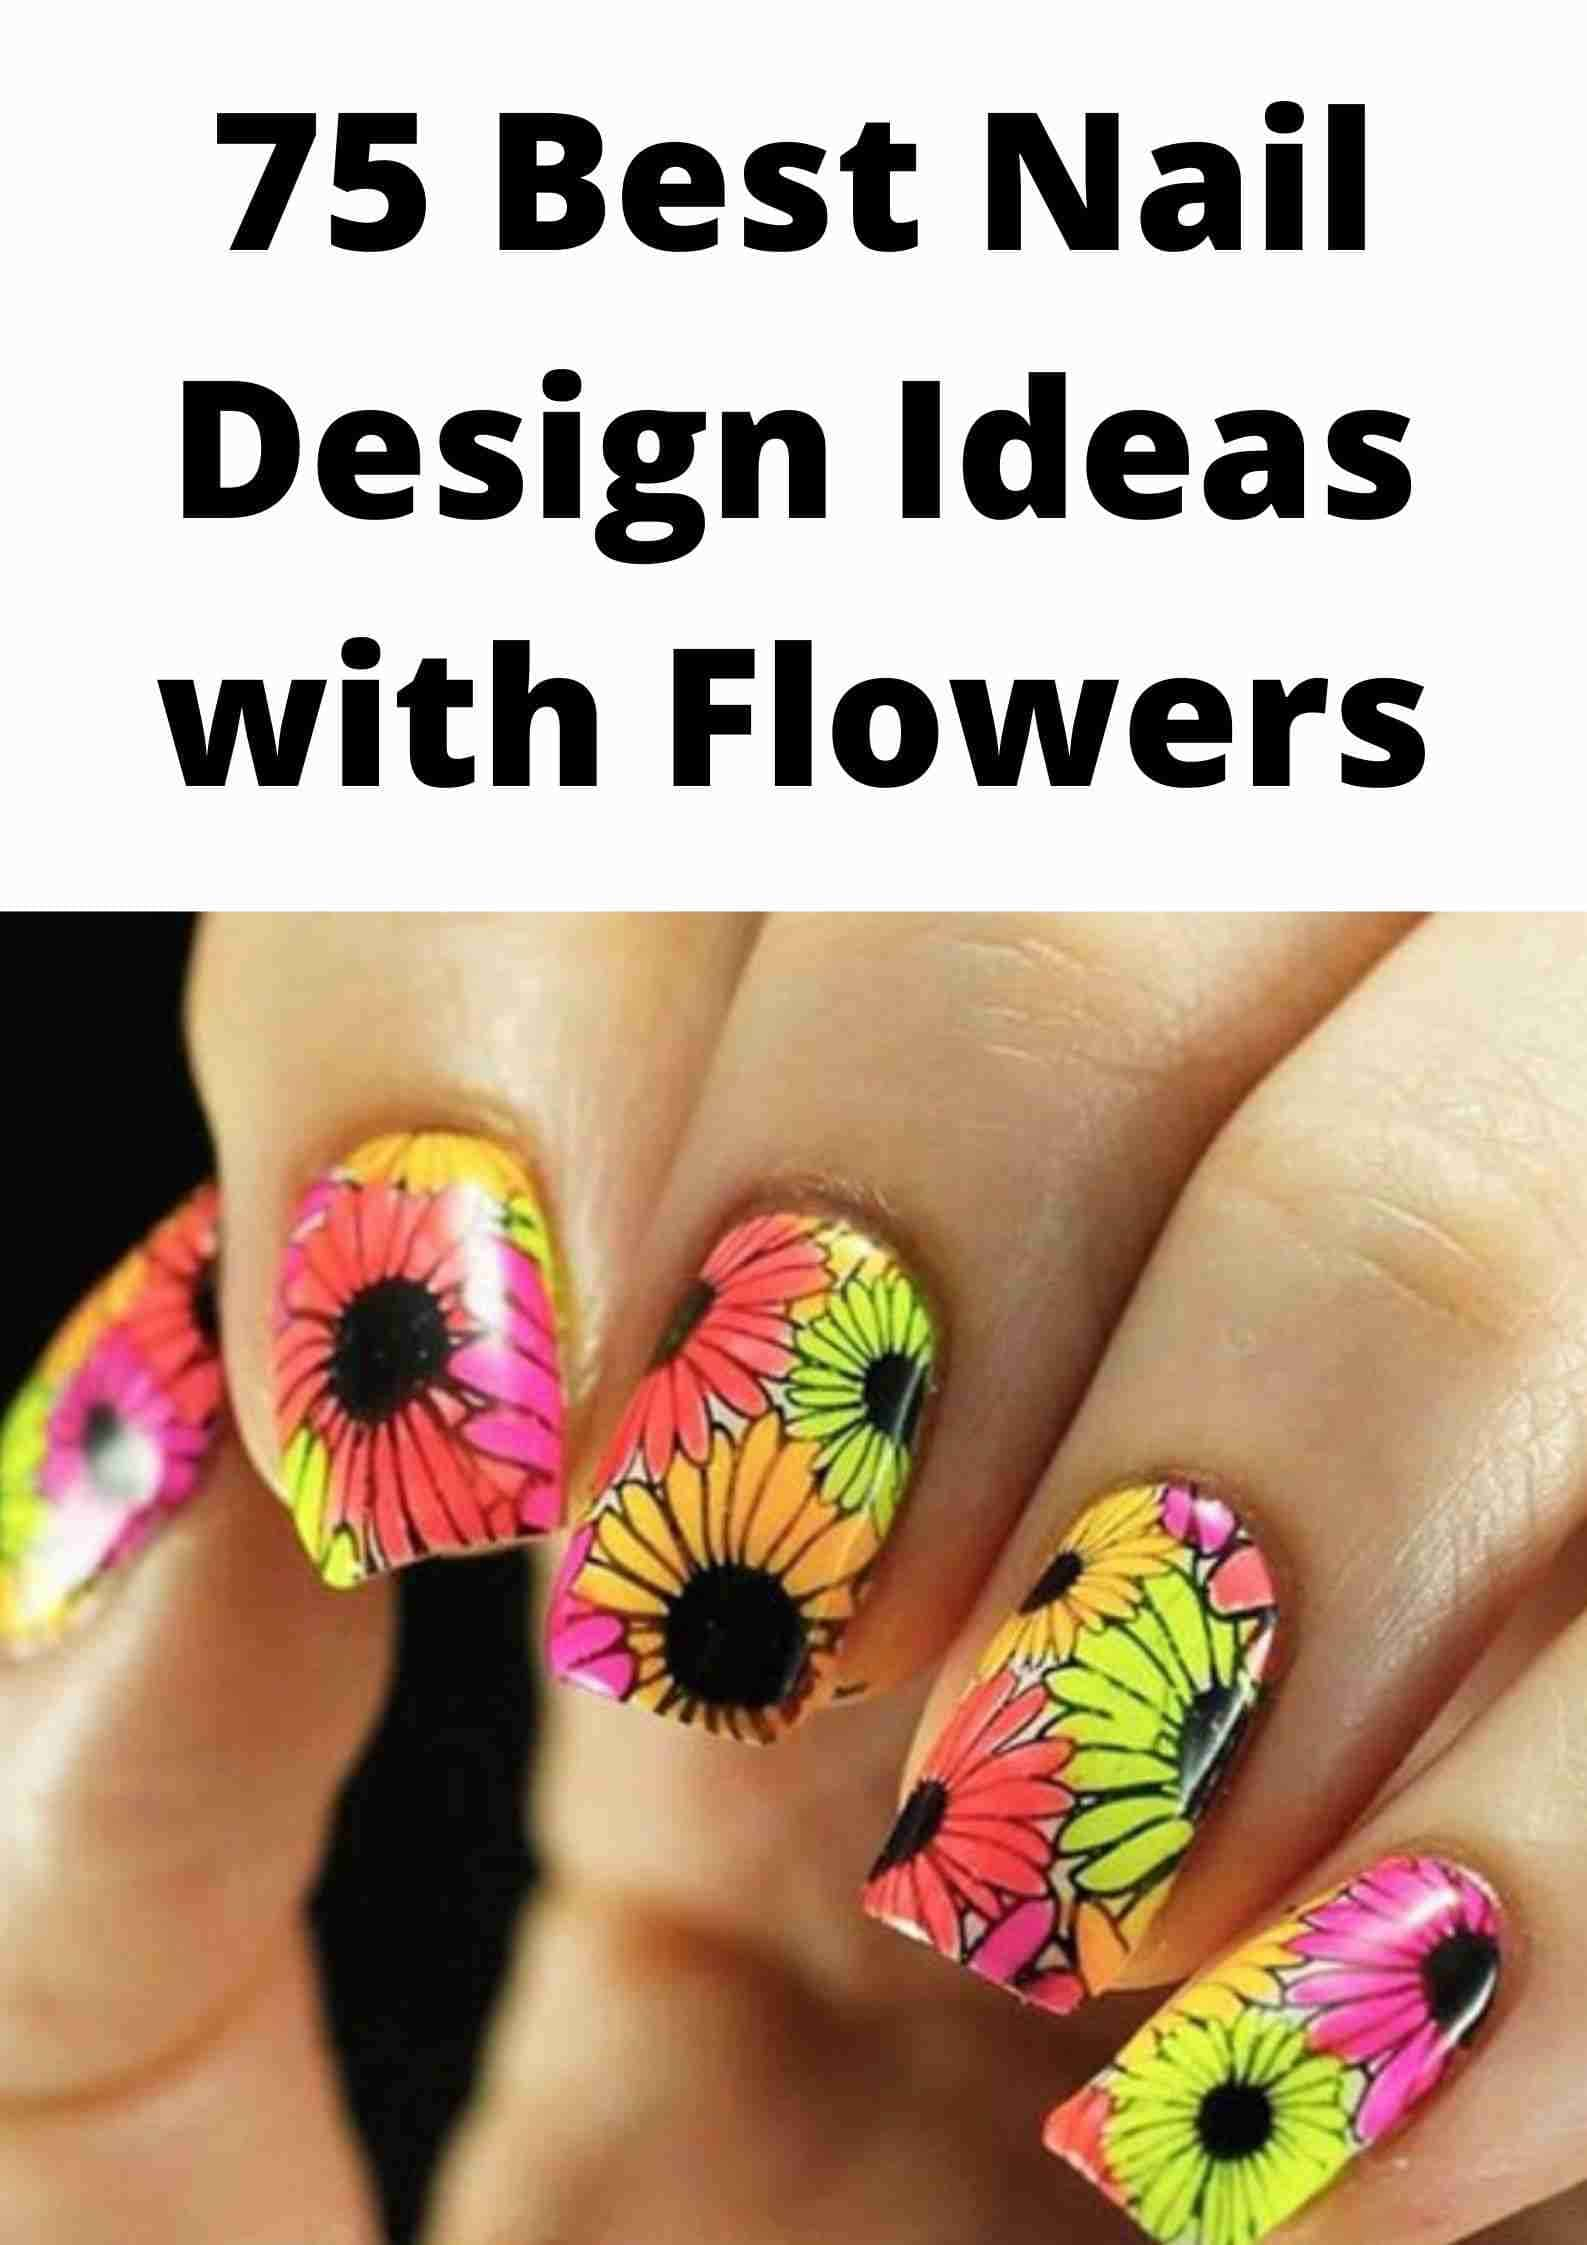 Nail Design with flower